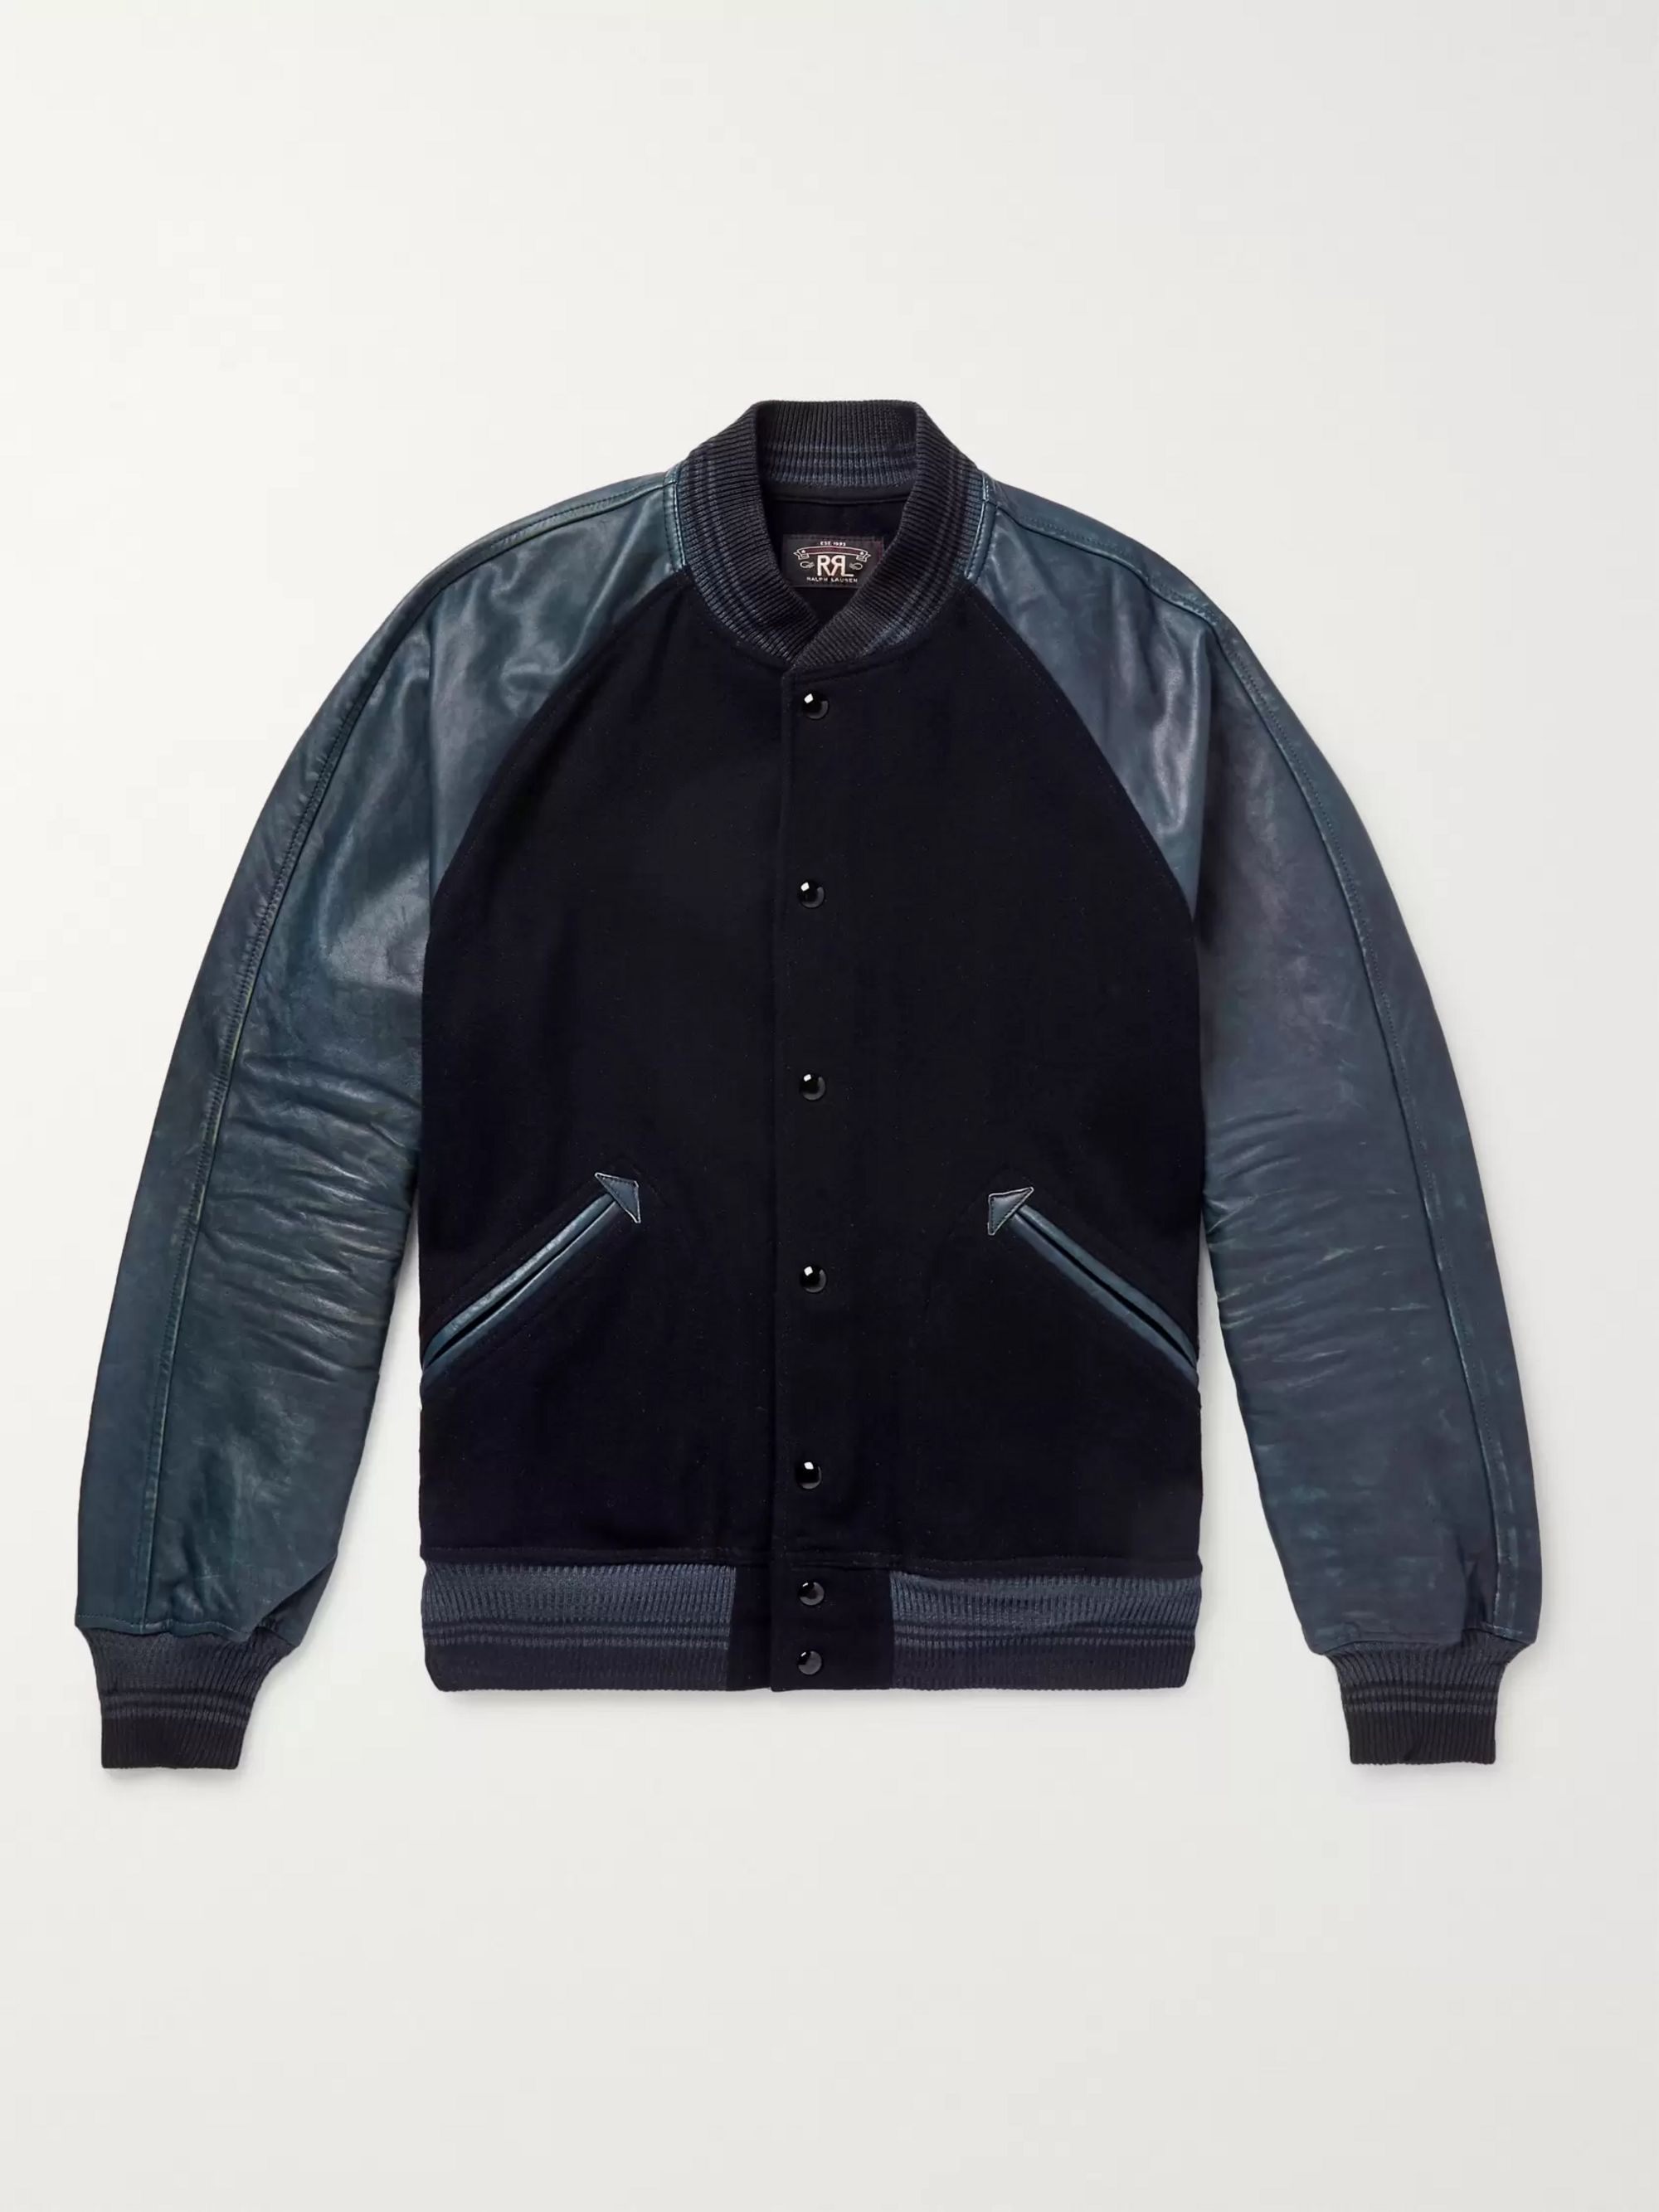 Cotton Blend and Distressed Leather Bomber Jacket